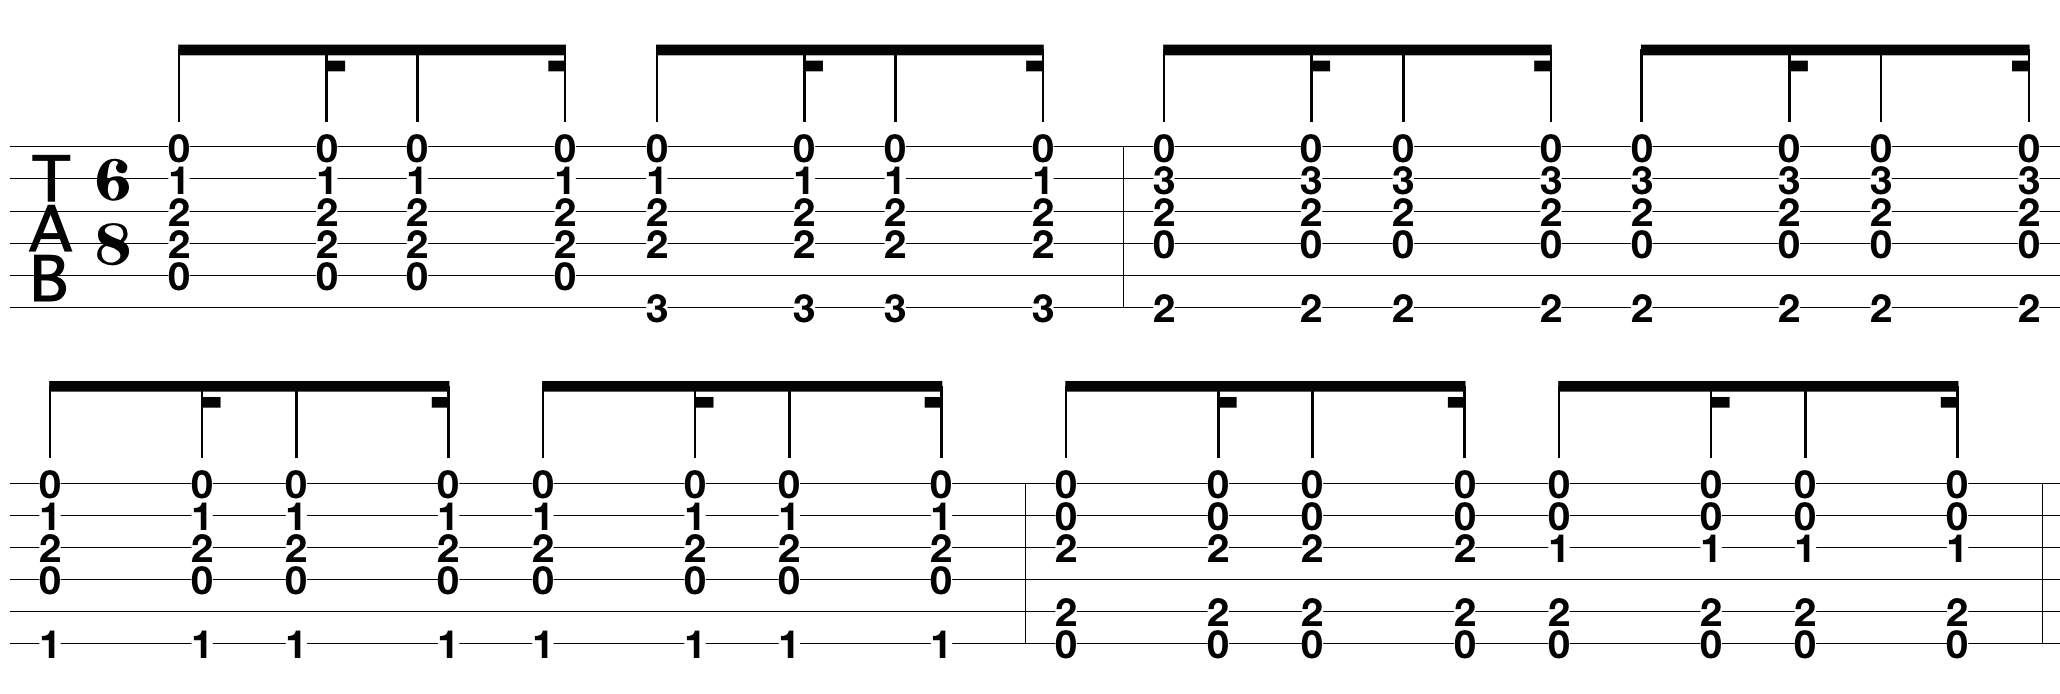 learn-guitar-for-free_1.png